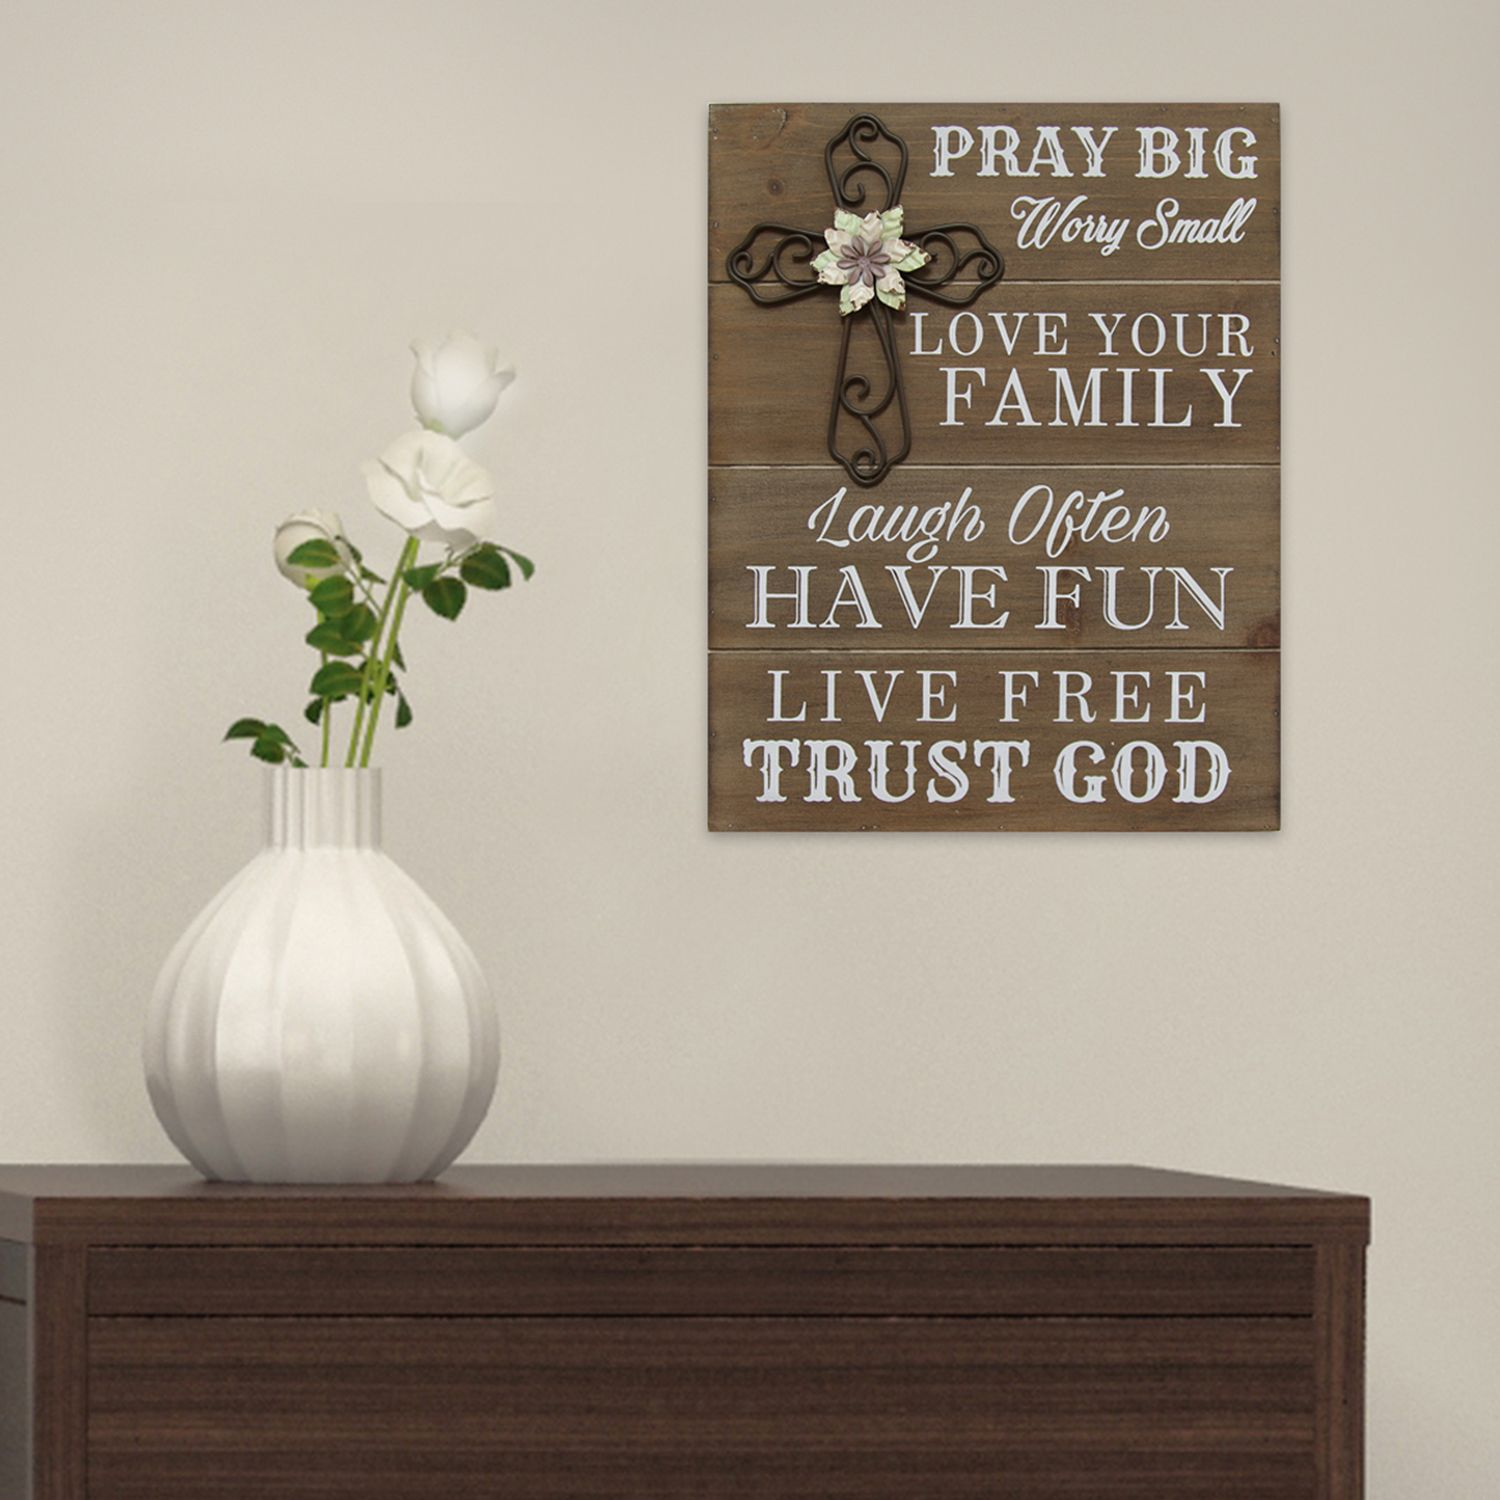 Stratton Home Decor U0027Pray Bigu0027 Wood Wall Art